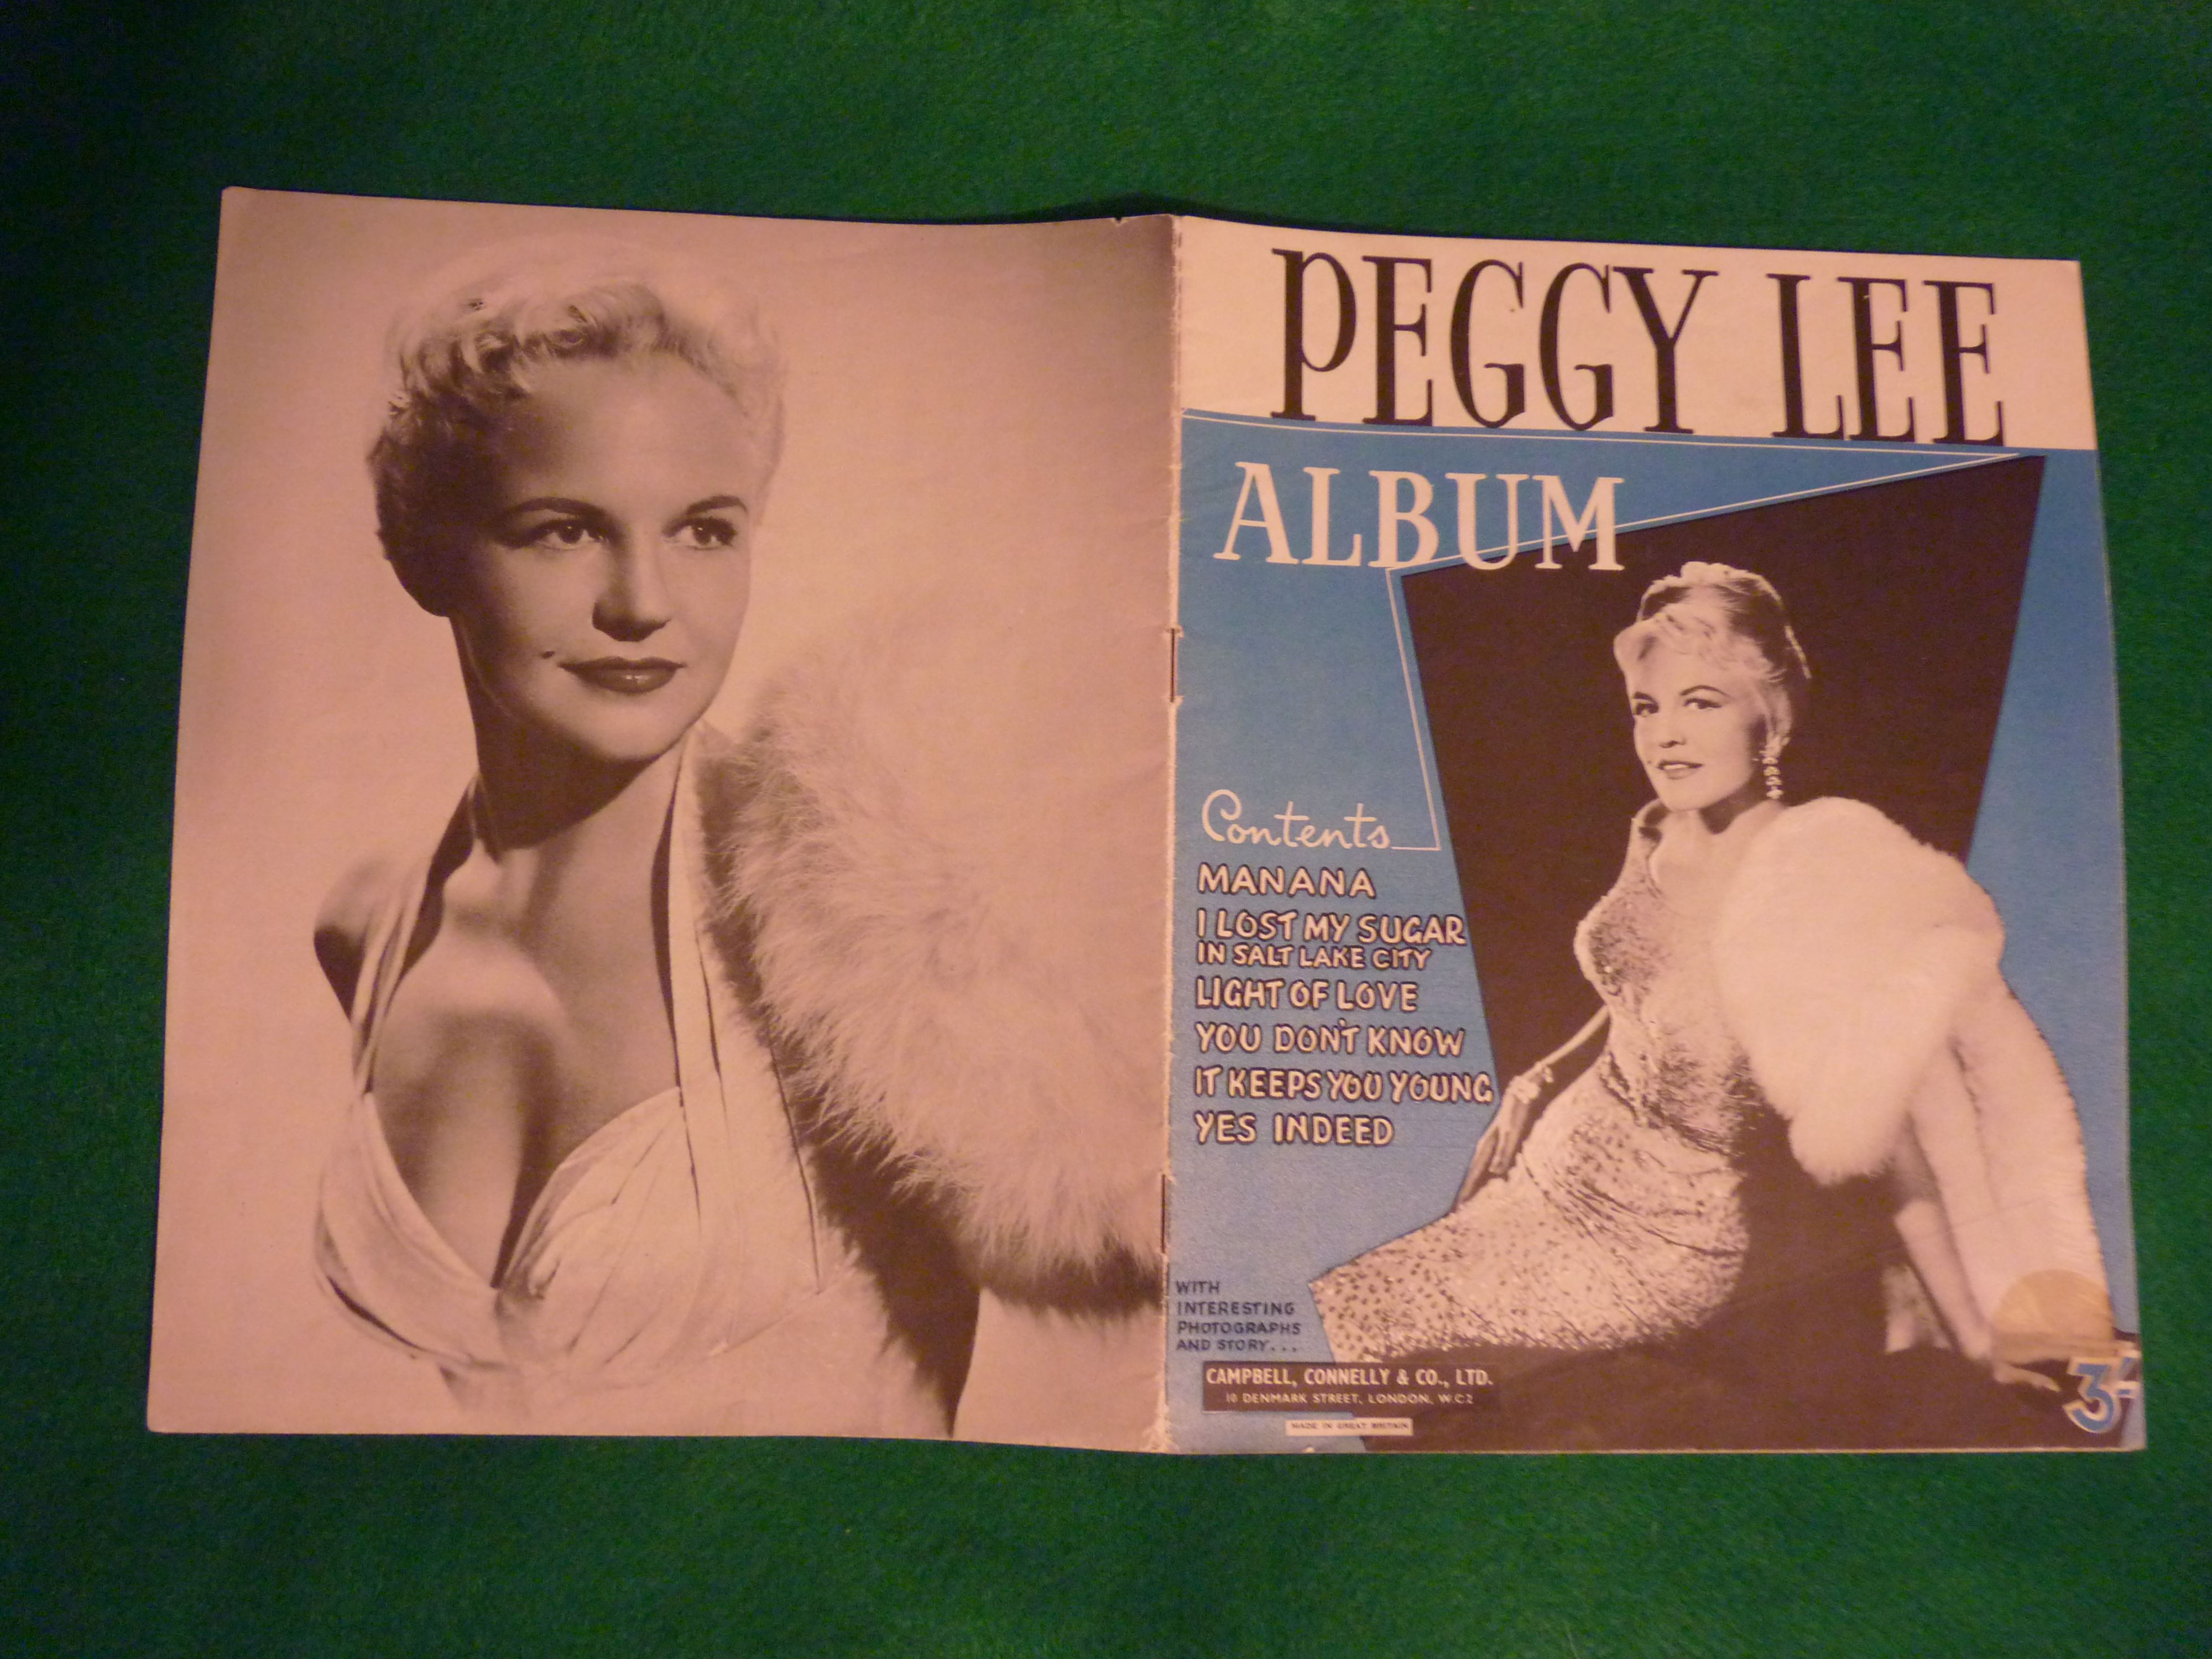 1948 Peggy Lee Sheet Music Album. She famously sang 'He's